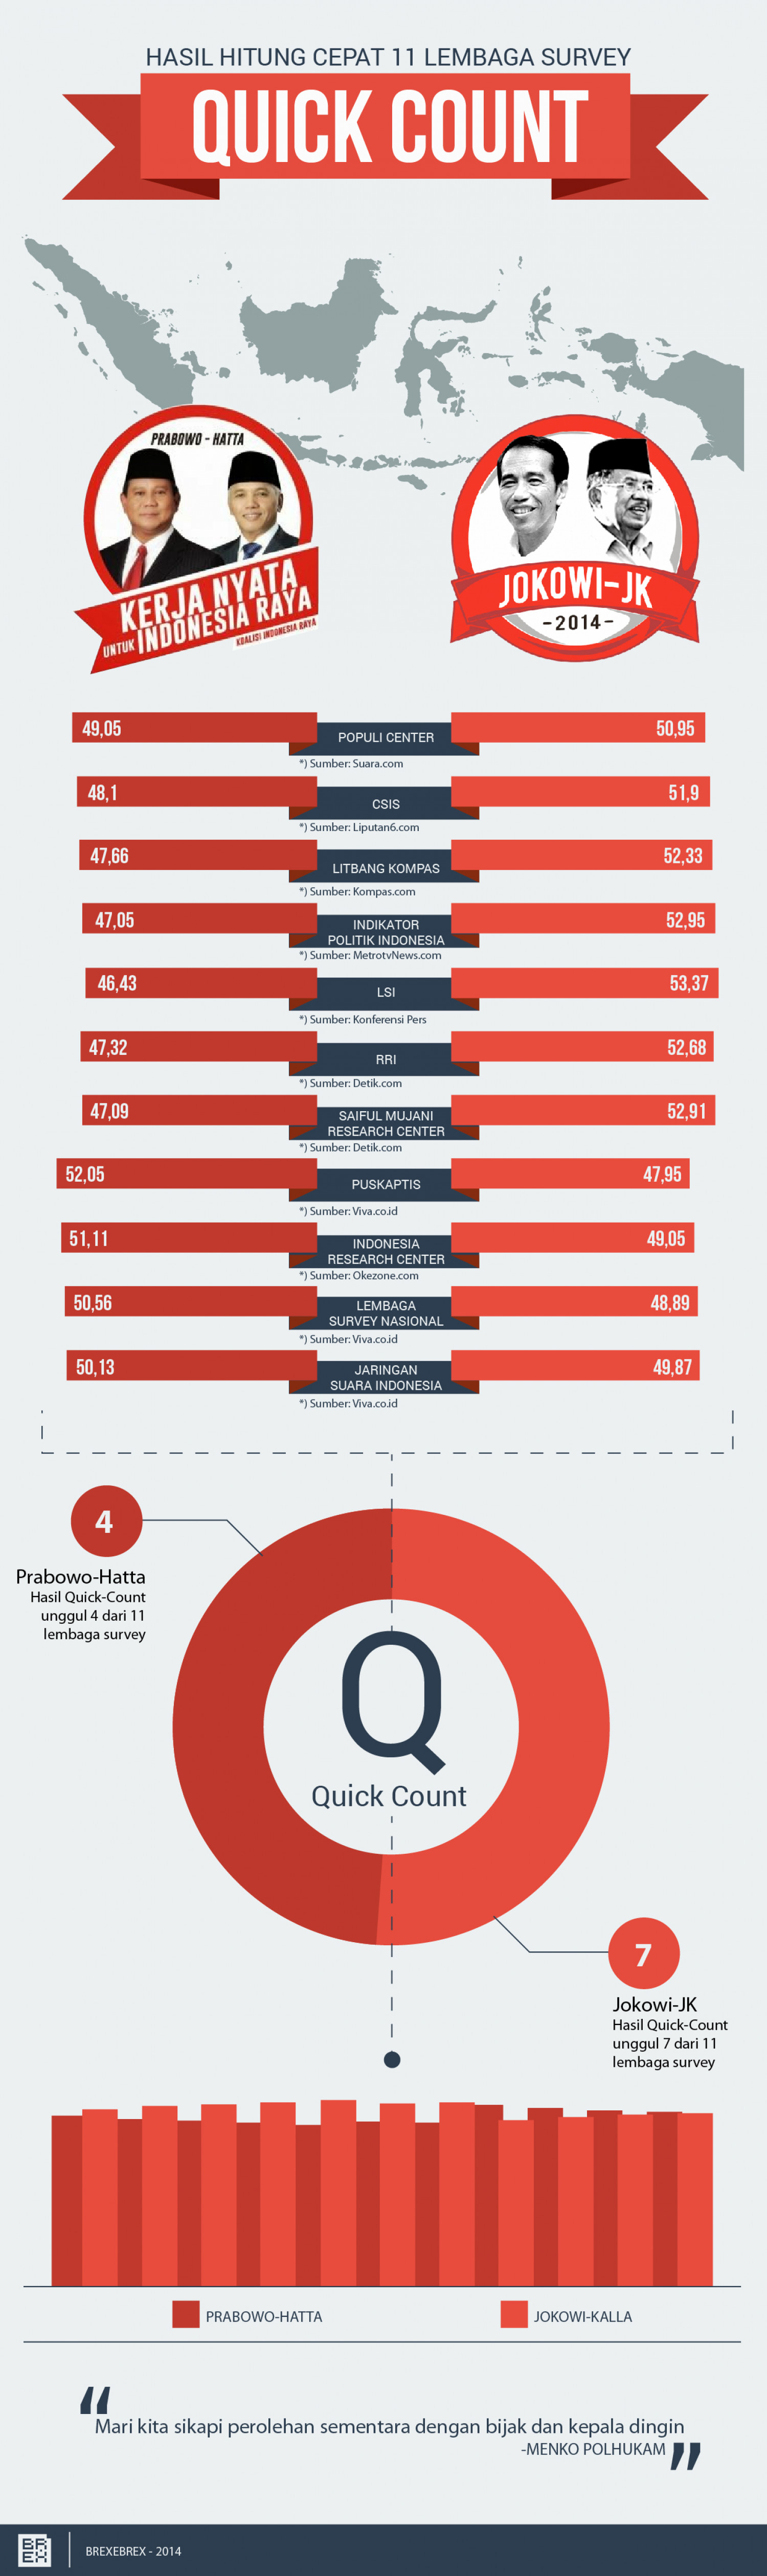 Quick-Count Pilpres 2014 Infographic